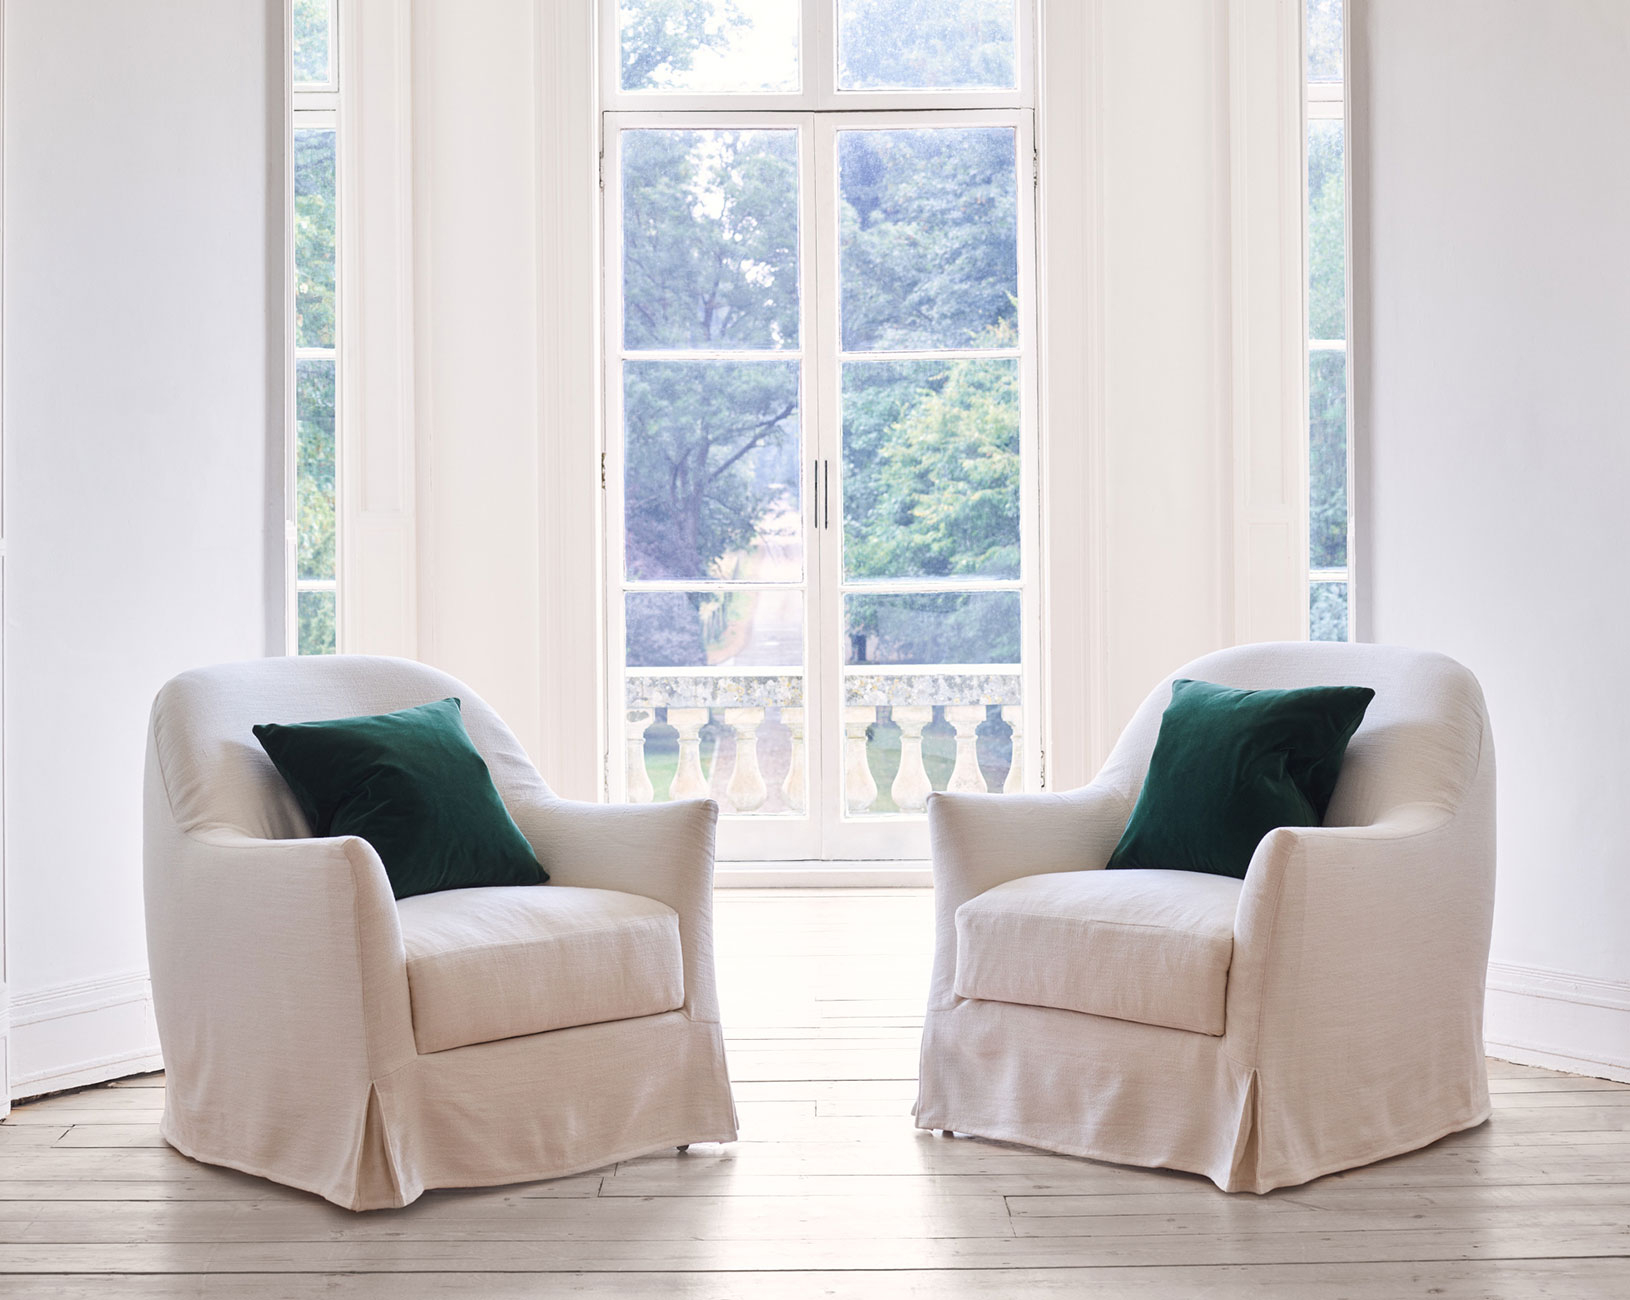 bloomsbury loose cover chair